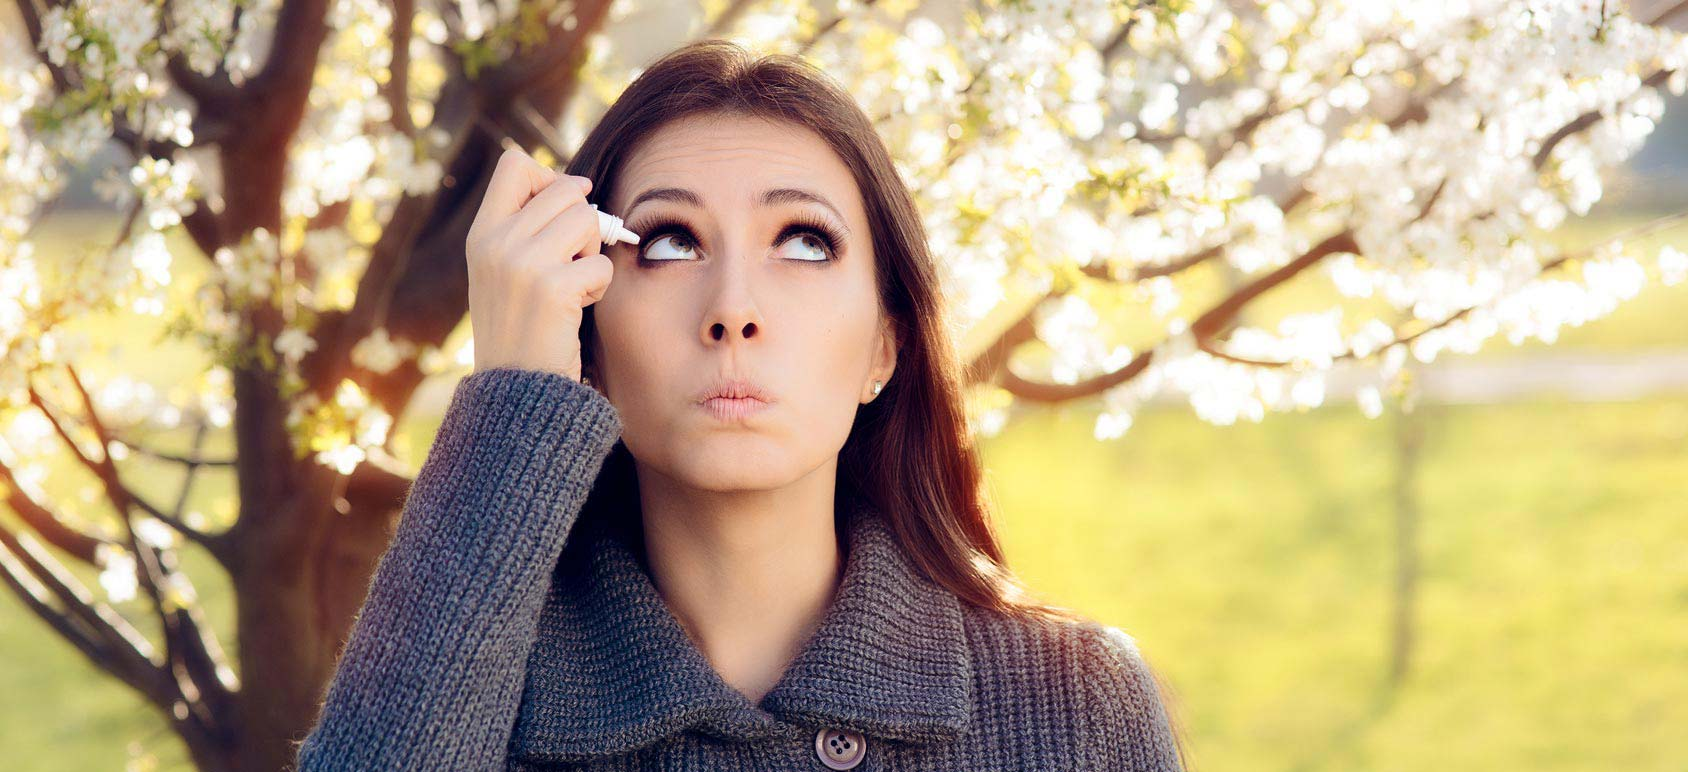 Tips to Avoid Eye Allergies